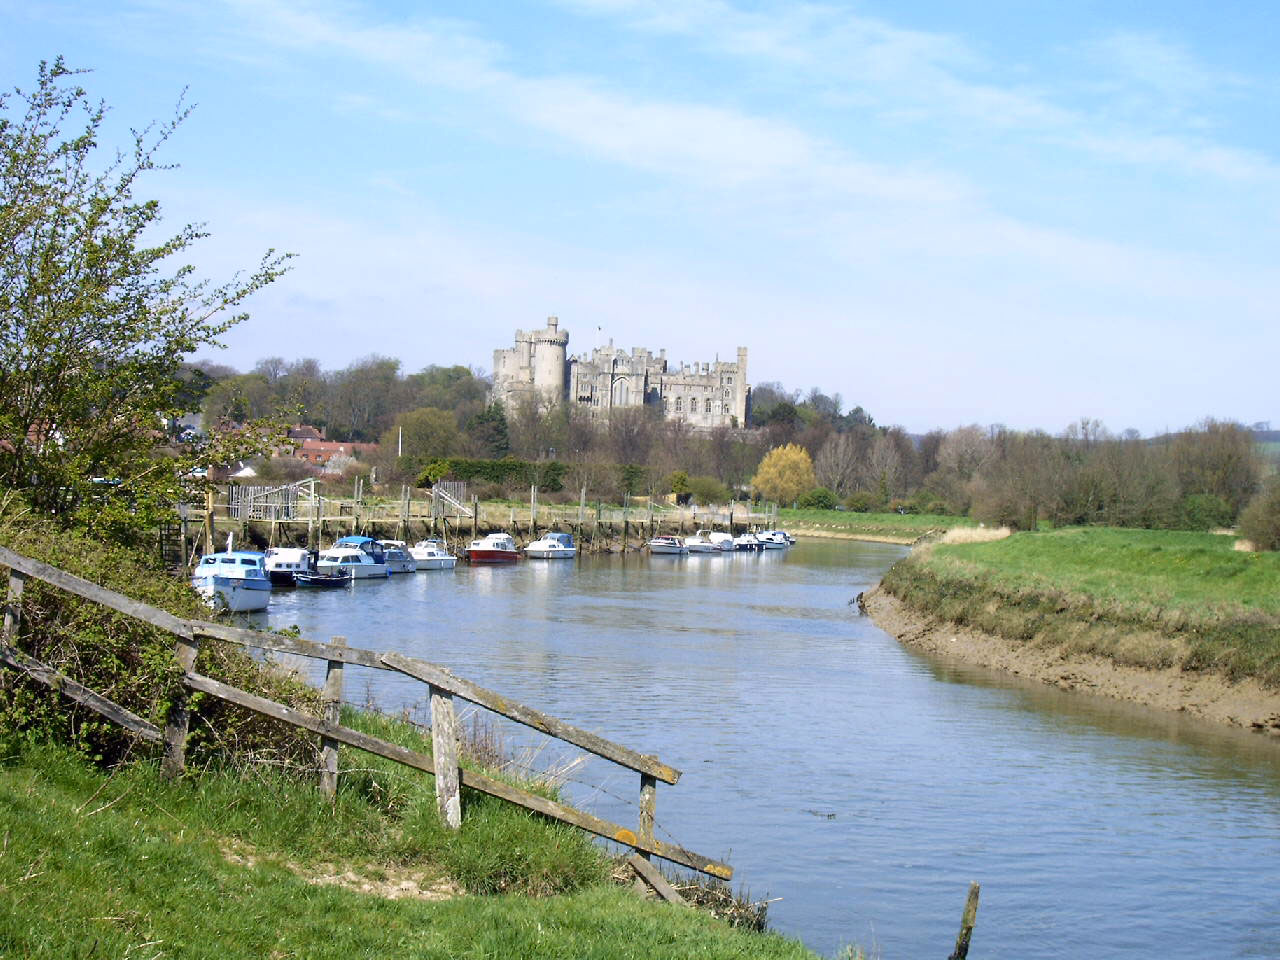 Worthing CES Arundel river and castle